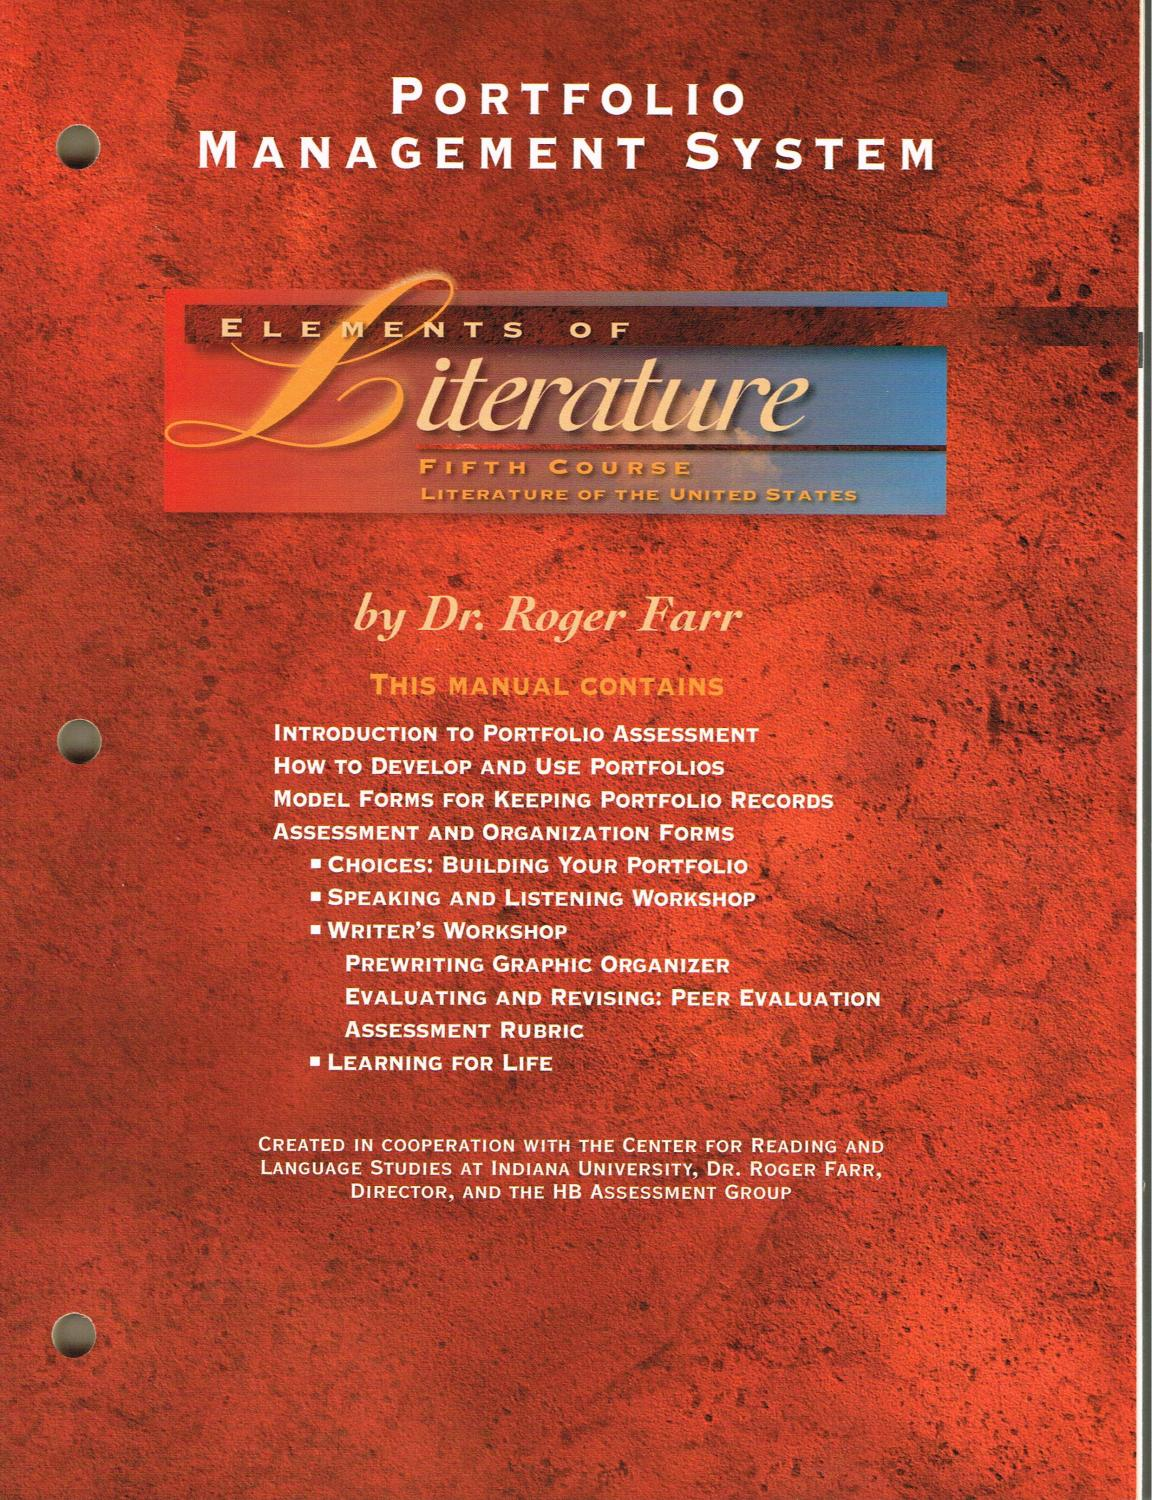 ELEMENTS OF LITERATURE - Fifth Course, Literature of The United States: PORTFOLIO MANAGEMENT SYSTEM - Farr, Roger